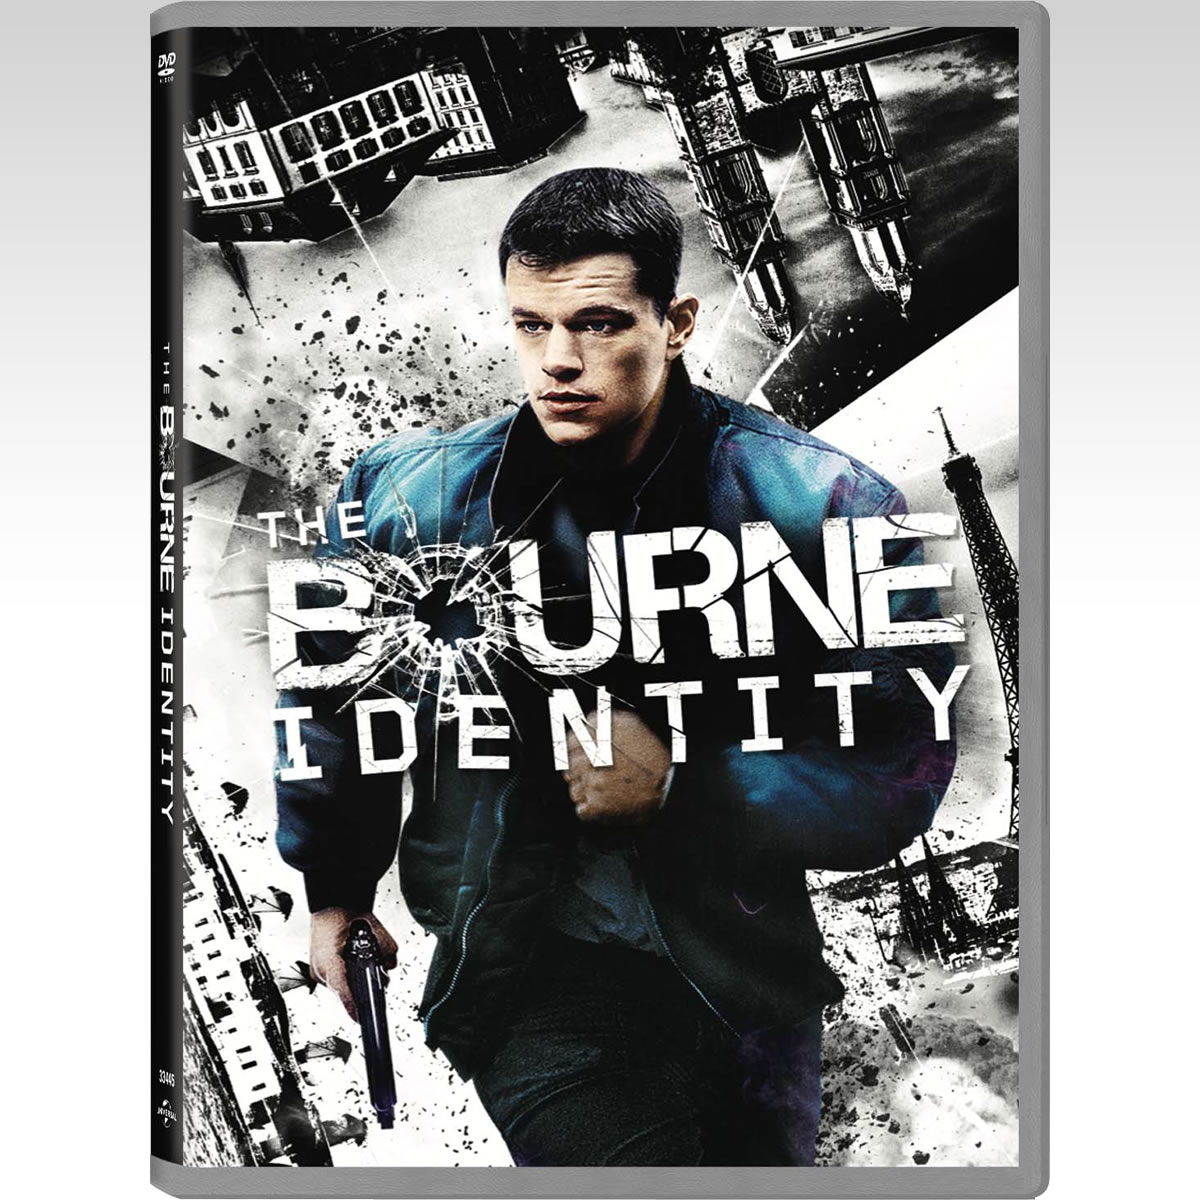 THE BOURNE IDENTITY - ΧΩΡΙΣ ΤΑΥΤΟΤΗΤΑ Bullet Special Edition (DVD)